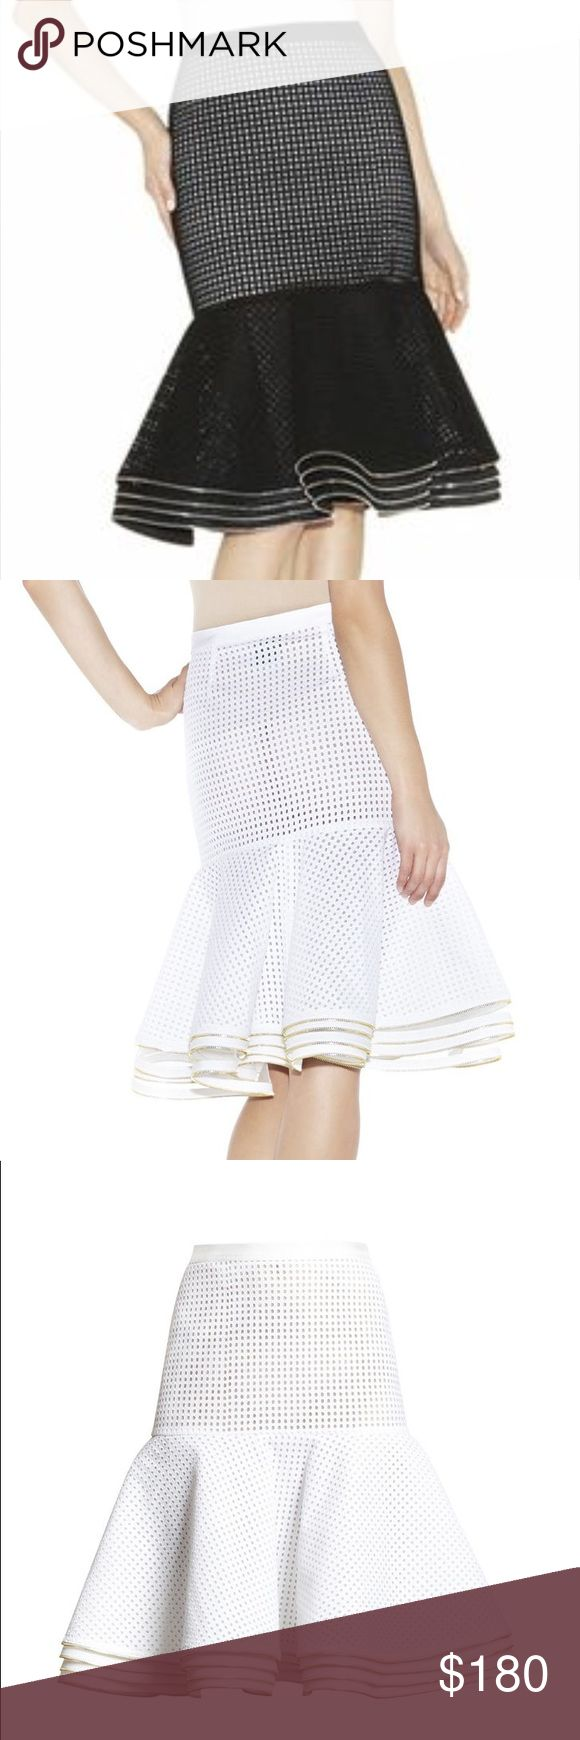 """Herve Leger midi peplum eyelet circle skirt xxs Herve Leger Retails $990 Size xxs - see last photo for size conversion. Lay flat waist is 13"""". 25"""" appx. length. **skirt for sale is BLACK. White photos are same style.** High-rise waist. Allover diamond-eyelet pattern. (Sheer look; slip may be preferred for styling.)  Tiered, skirted hem with metallic zipper trim.  Concealed side-seam zipper with hook-and-bar closure.  Eyelet: Cotton. Novelty: Rayon, Nylon, Spandex. Woven: Polyester.   New…"""